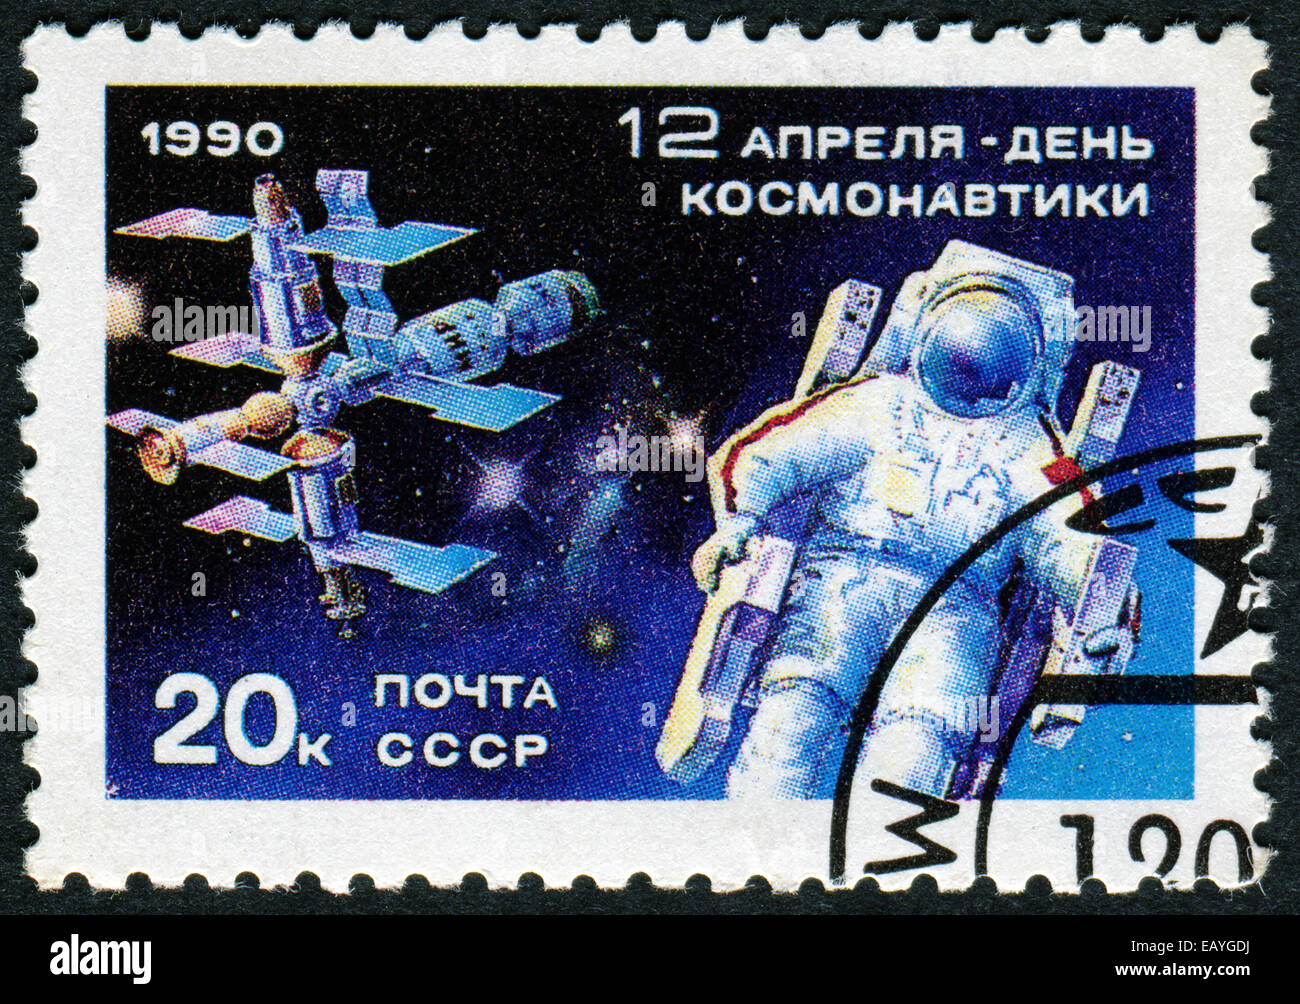 USSR - CIRCA 1990: A stamp printed in the USSR, shows a cosmonaut in a maneuvering unit outside the Mir Space Station - Stock Image